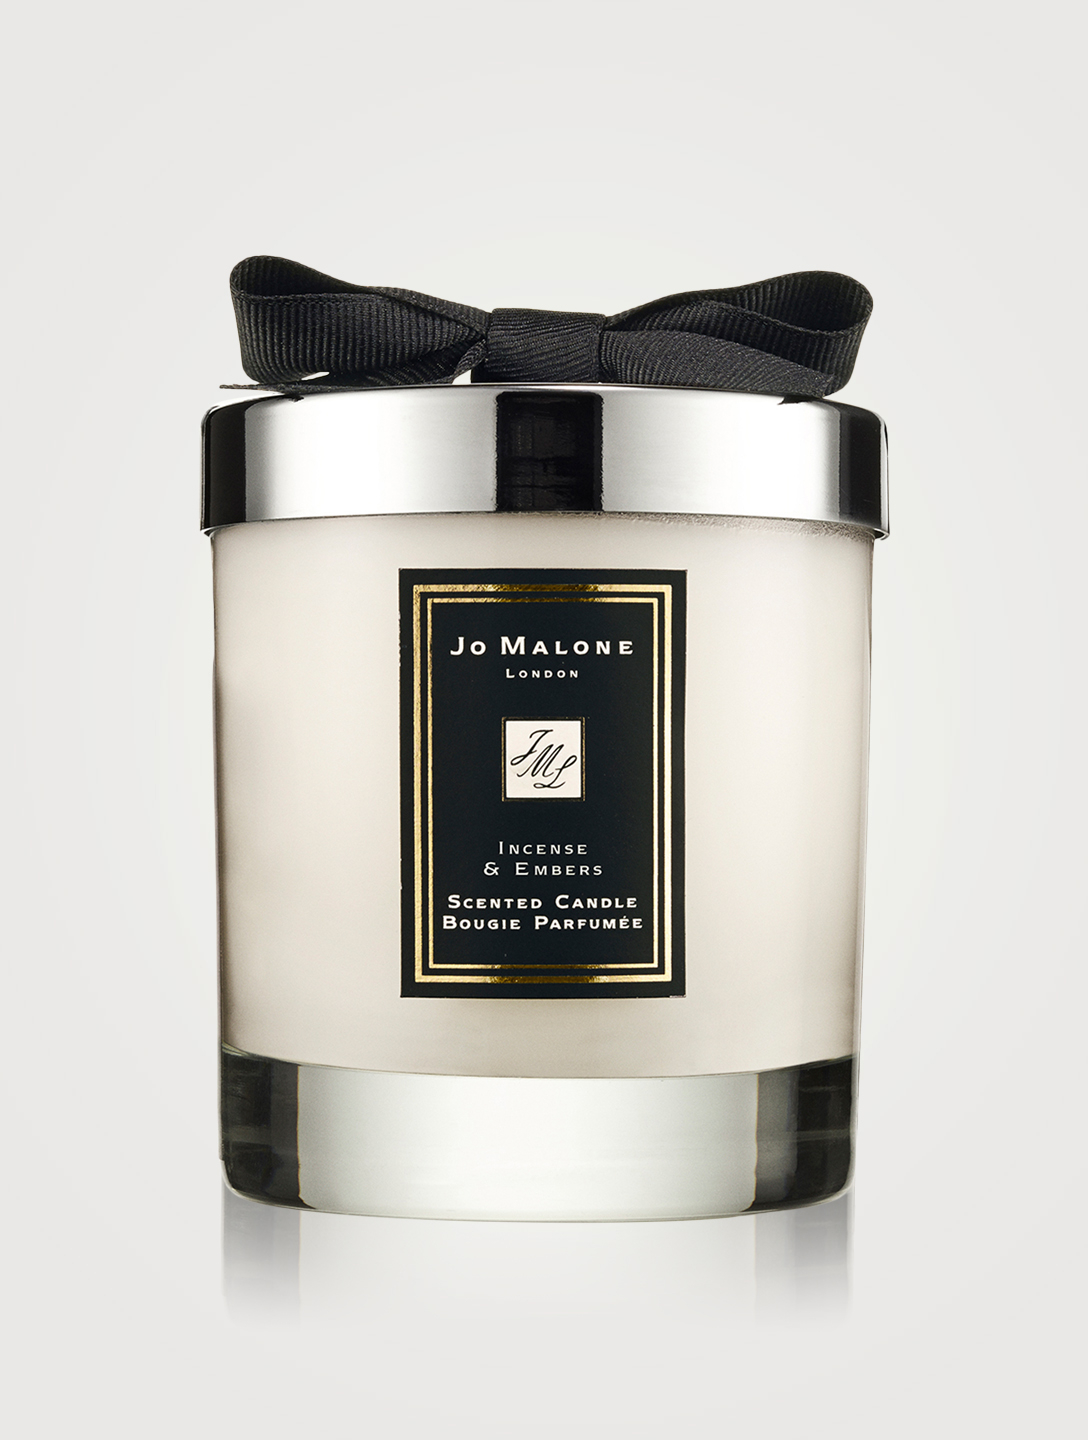 JO MALONE LONDON Bougie parfumée Incense & Embers Beauté